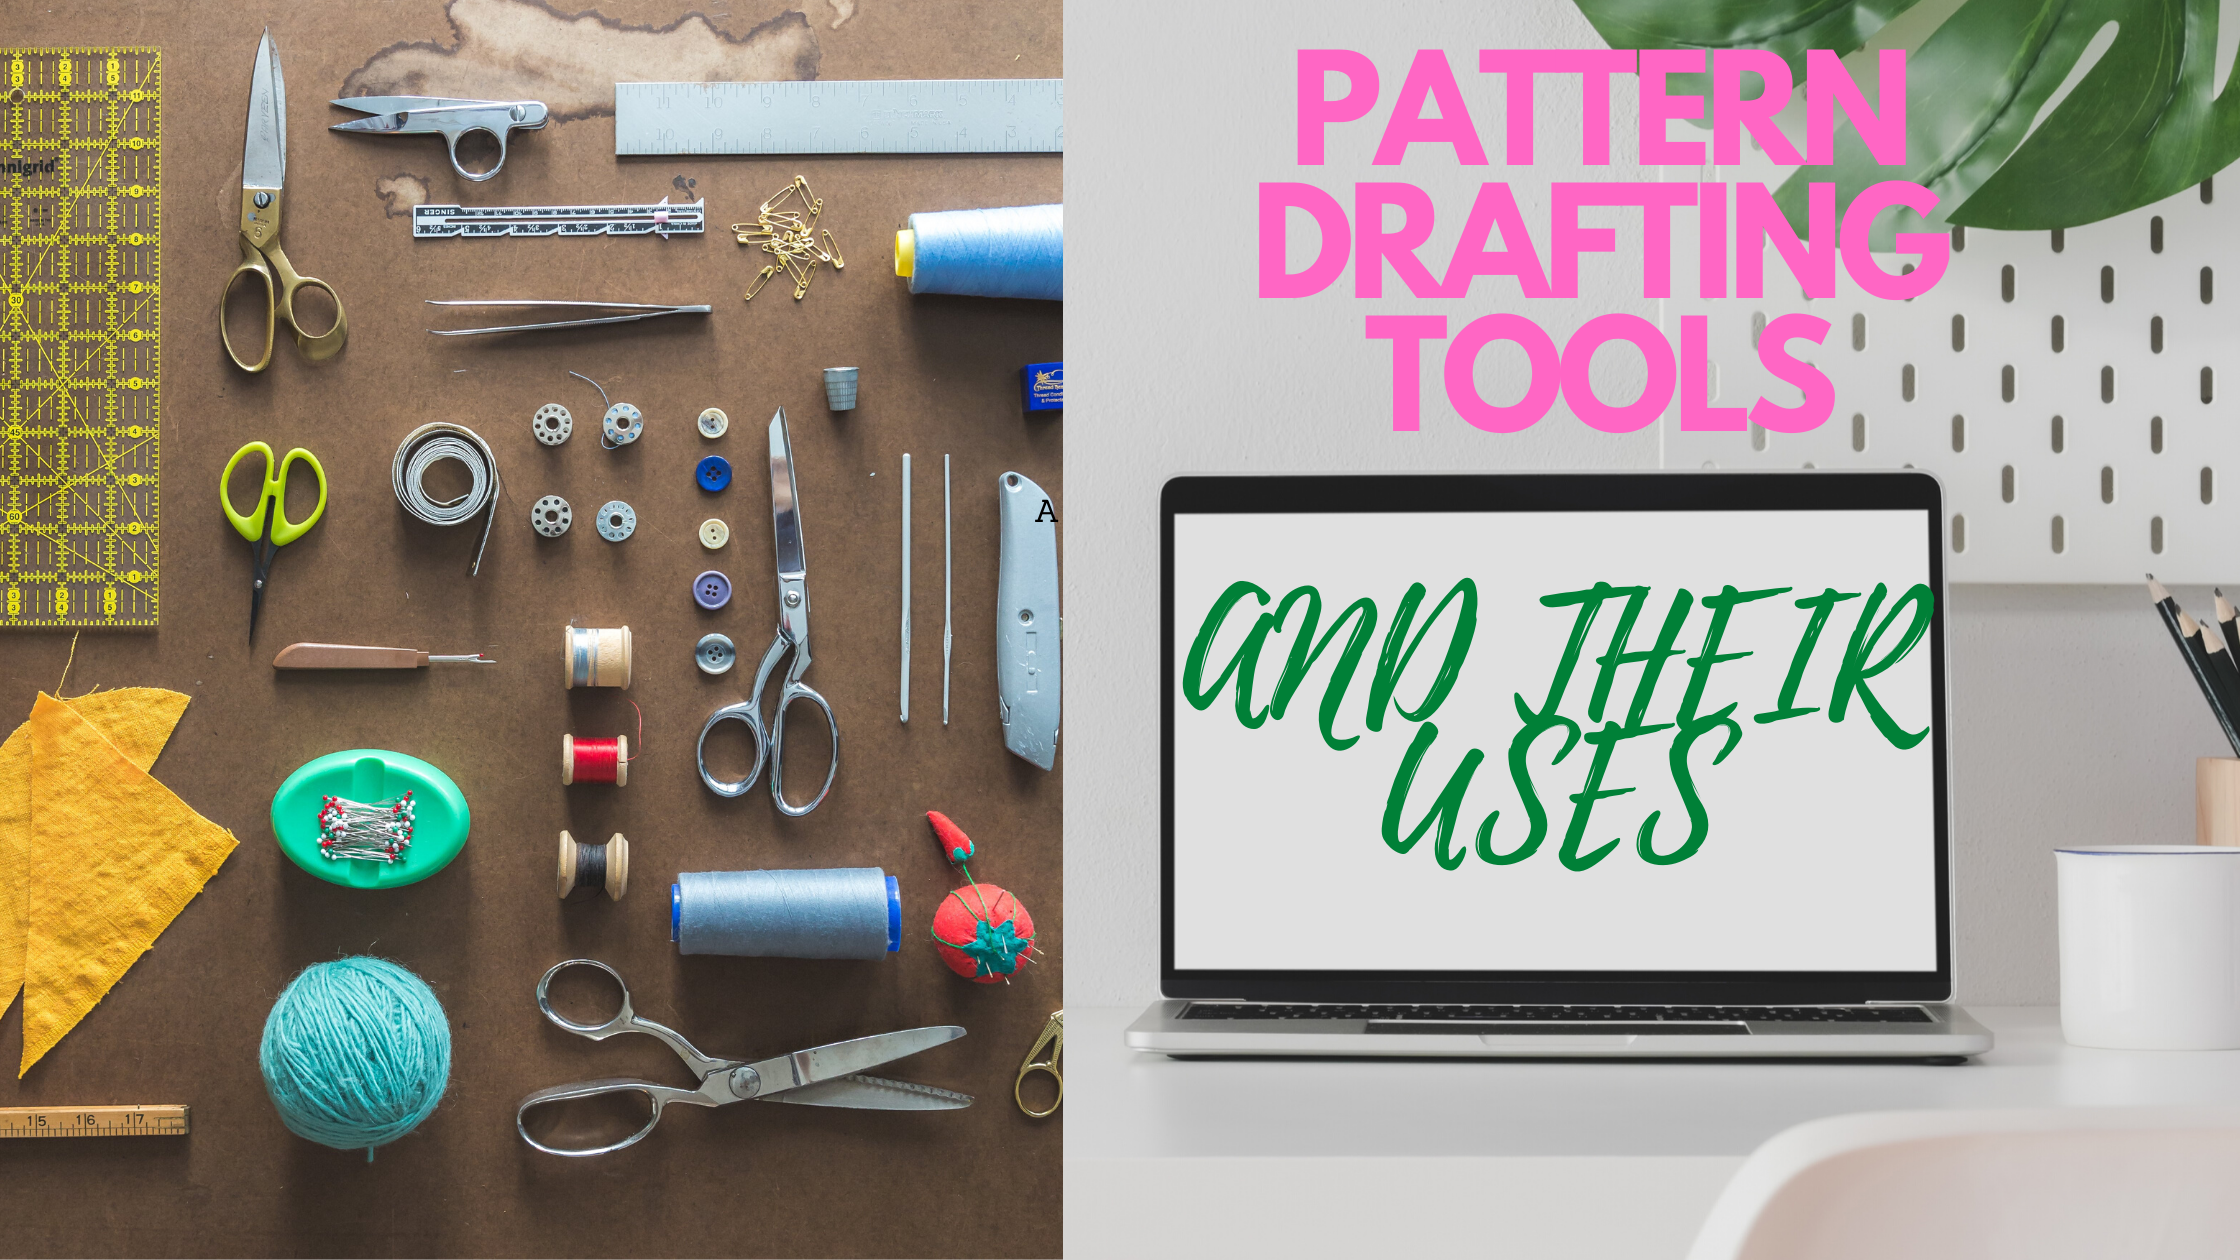 You are currently viewing PATTERN DRAFTING.PATTERN DRAFTING TOOLS AND THEIR FUNCTIONS